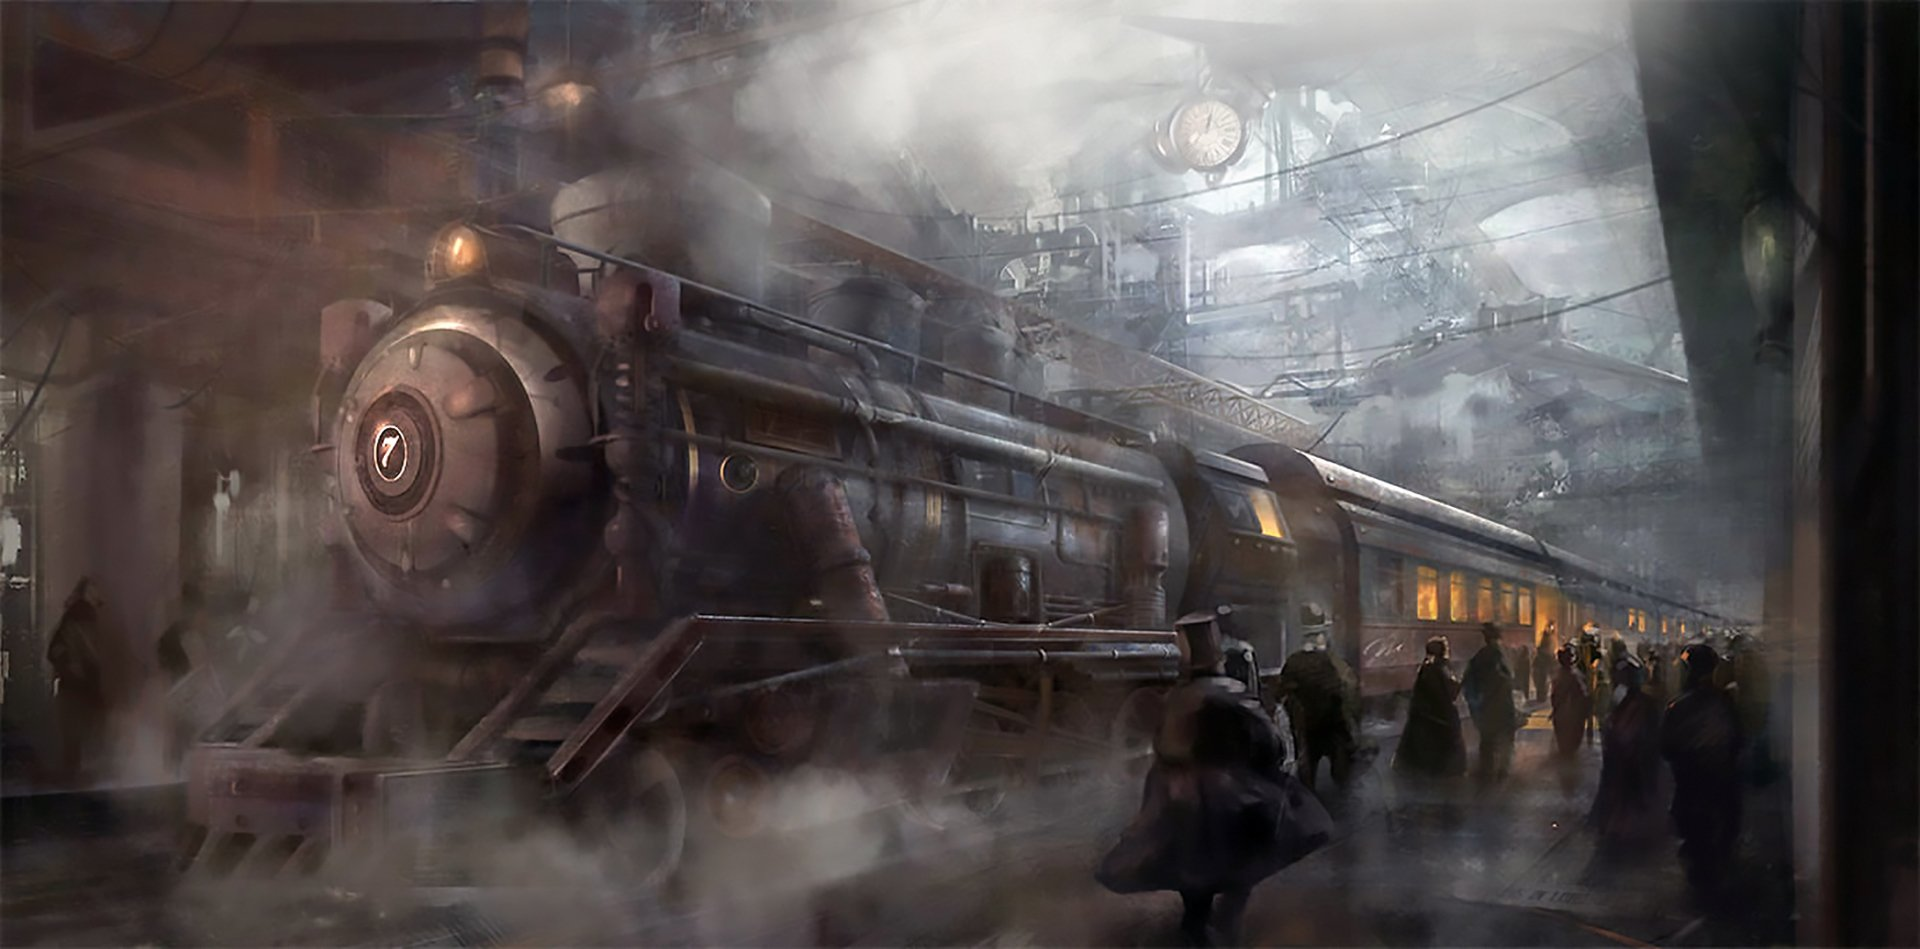 Sci Fi - Steampunk  Train Station Train Wallpaper